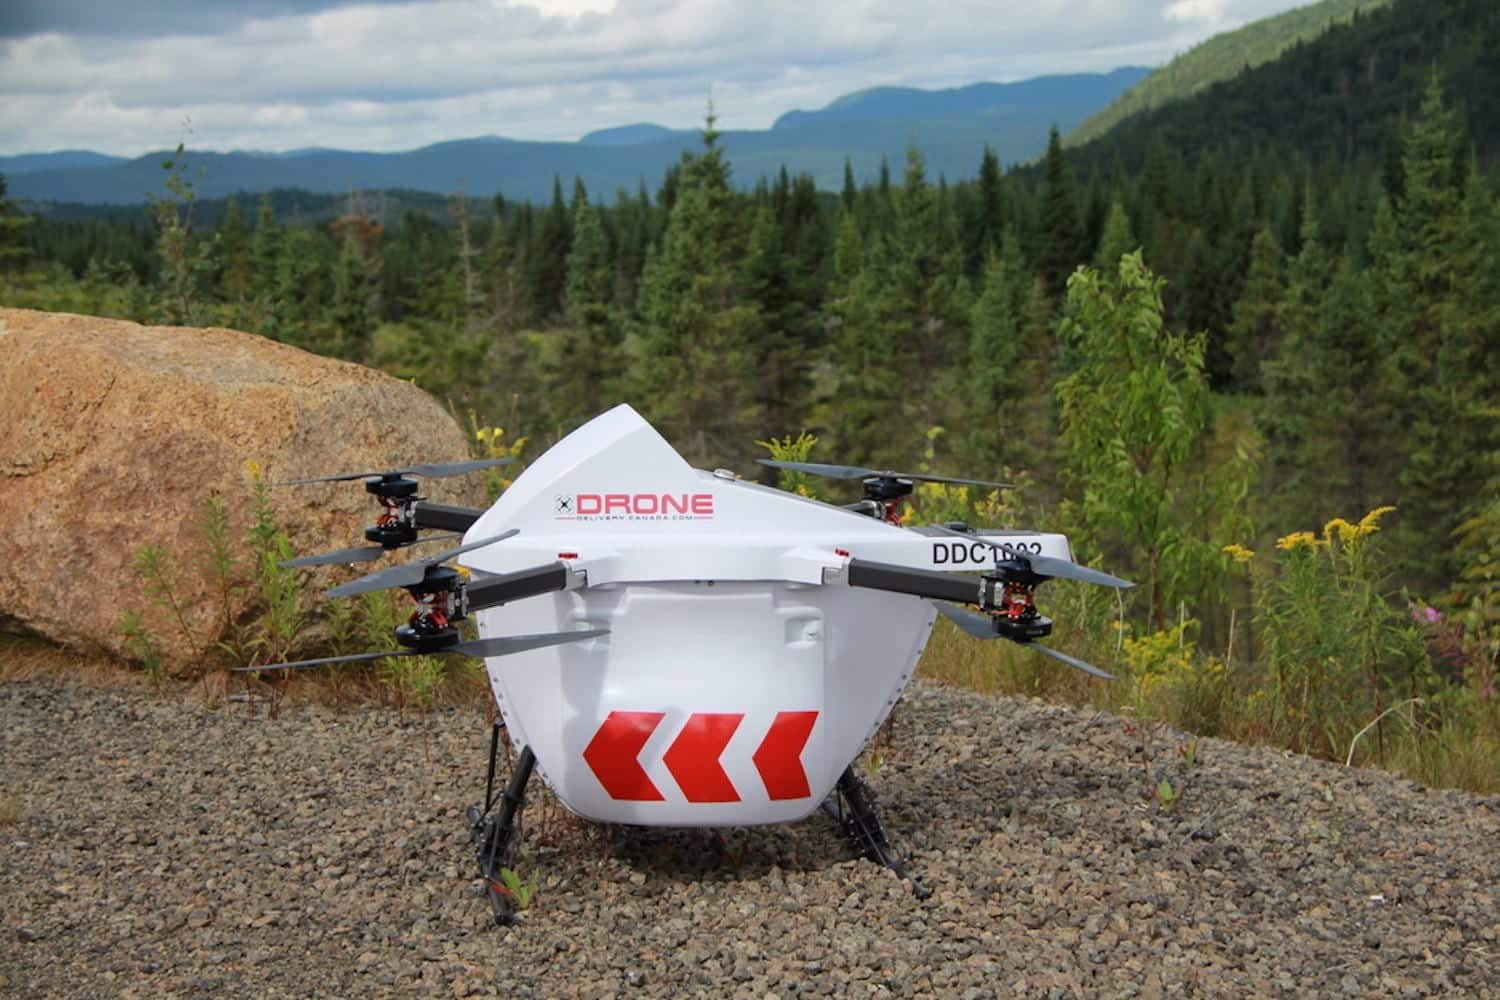 Drone Delivery Canada approved for BVLOS drone delivery operations